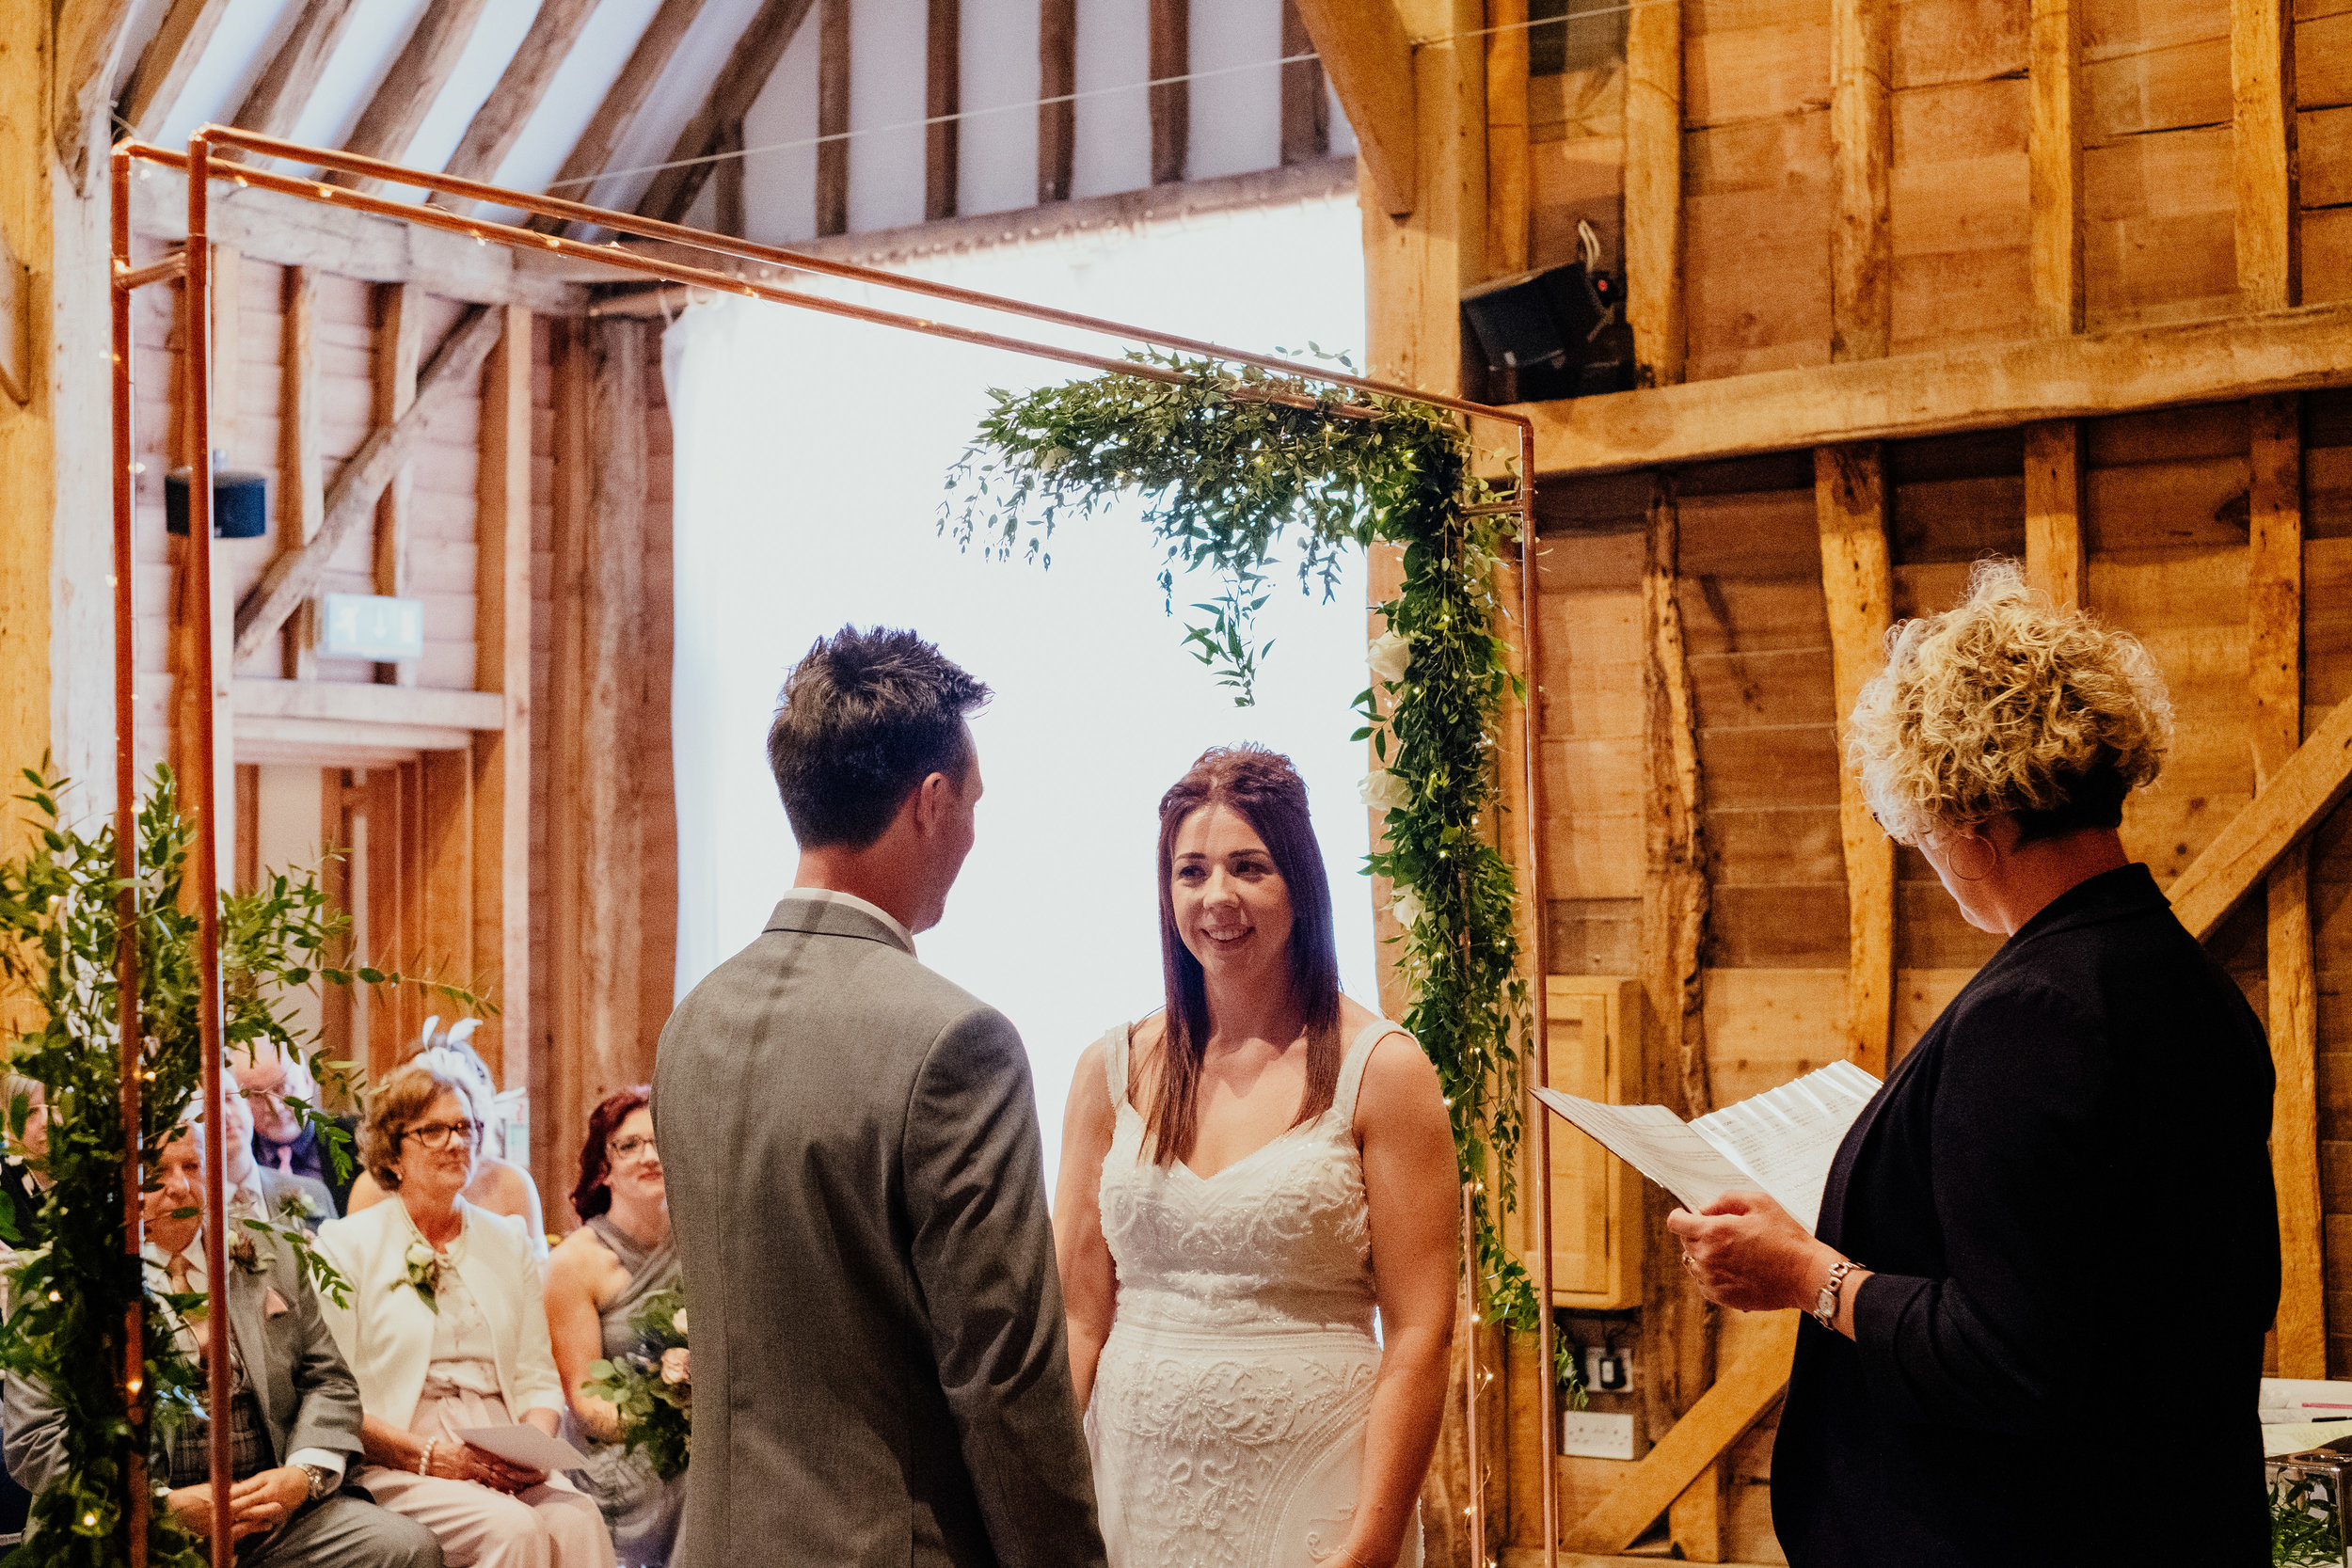 Wedding ceremony at Tewin Bury Farm